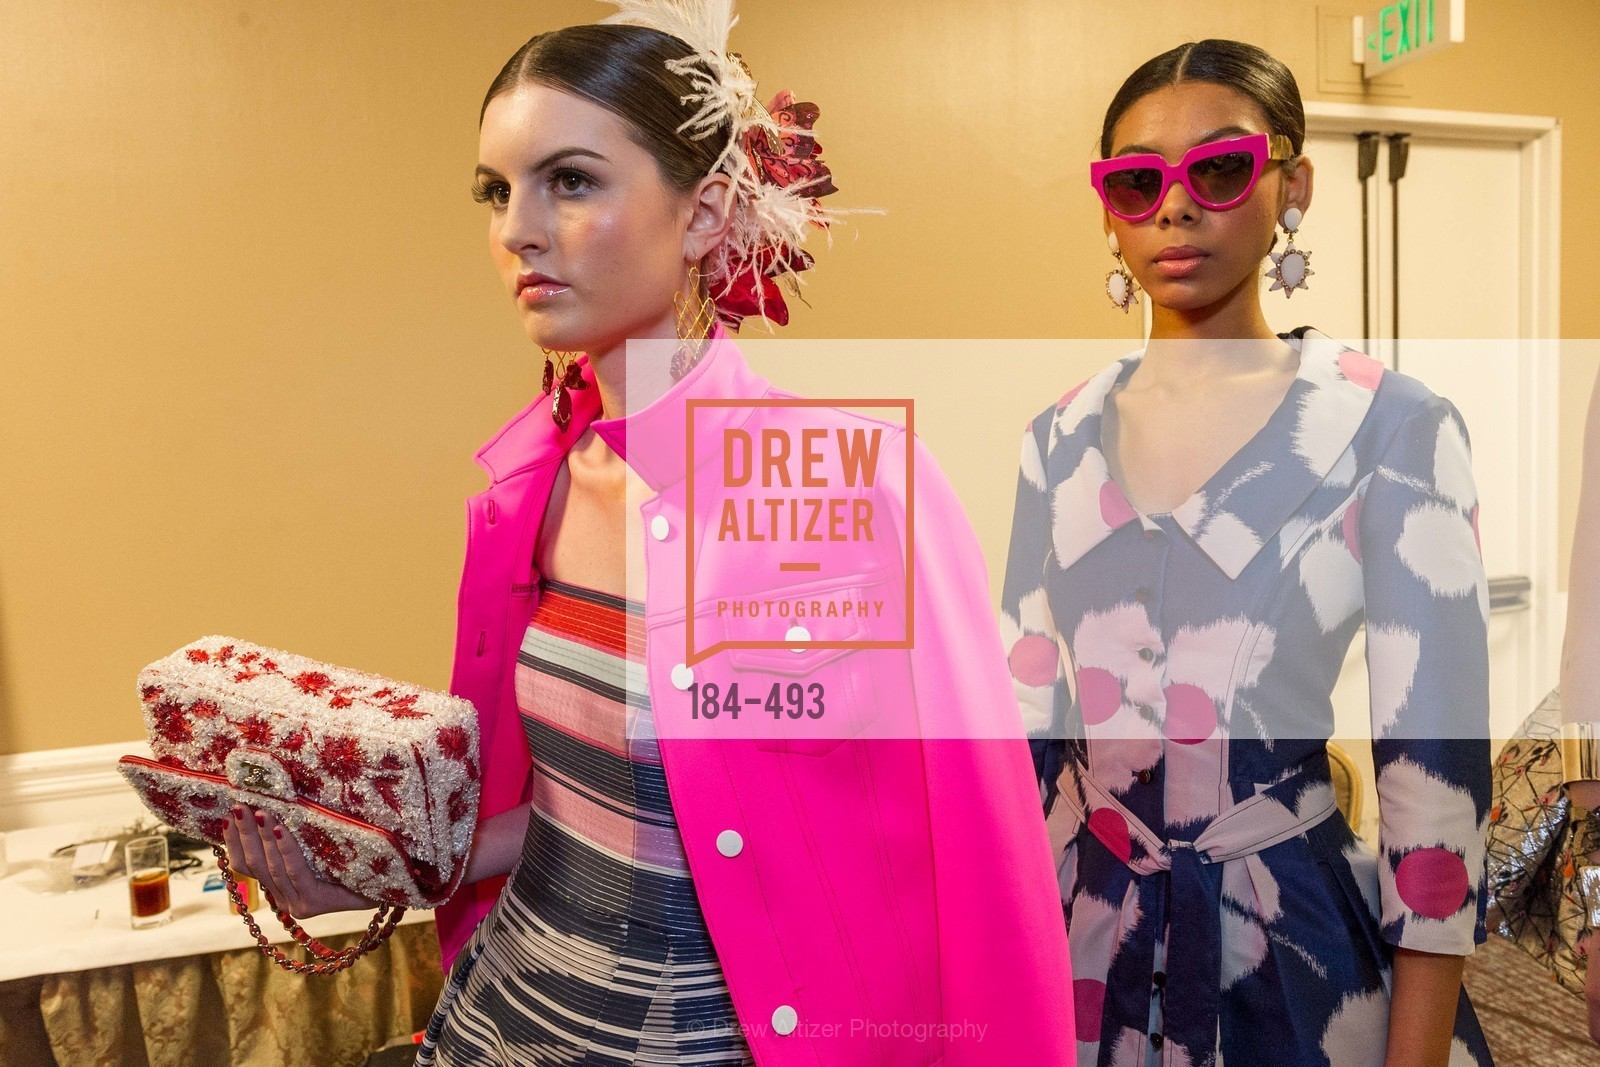 Danielle Porter, Kyra Stewart, SAN FRANCISCO BALLET AUXULIARY 2014 Fashion Show, US. The Fairmont, April 3rd, 2014,Drew Altizer, Drew Altizer Photography, full-service event agency, private events, San Francisco photographer, photographer California